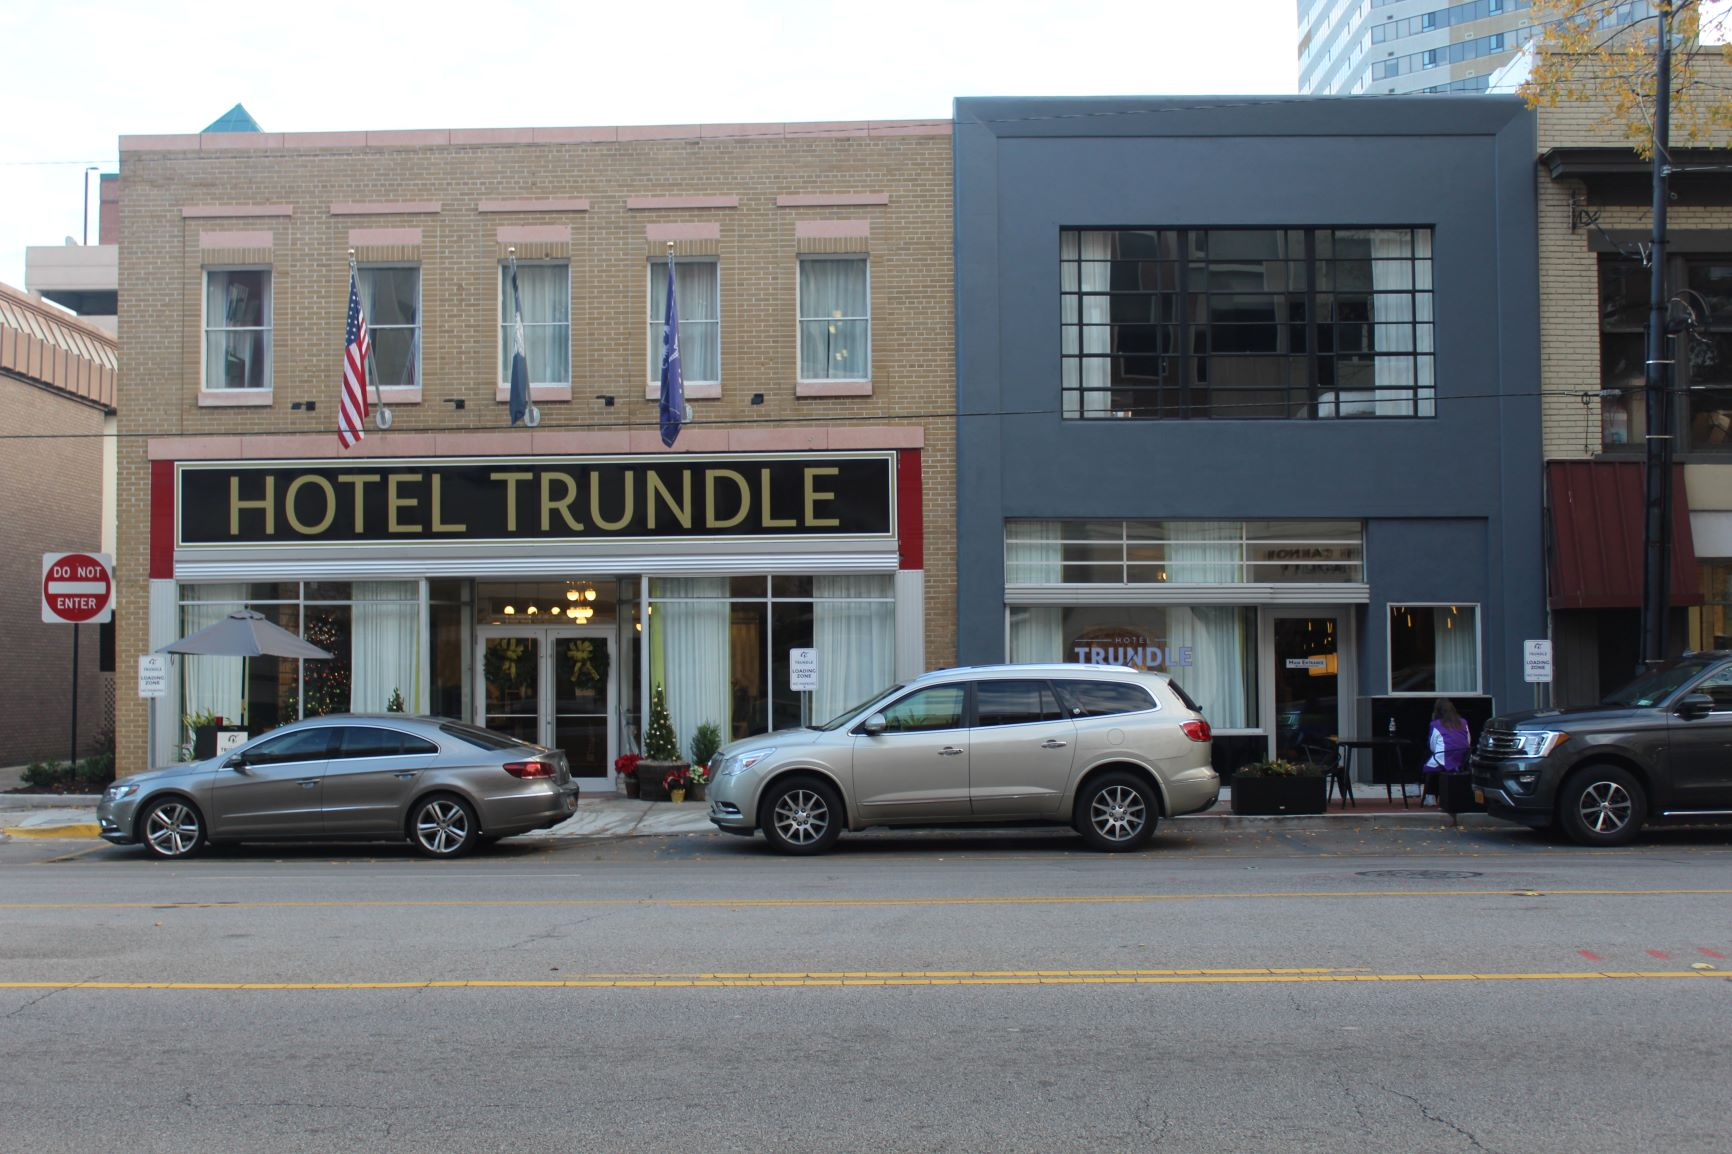 Hotel Trundle and BOUDREAUX design firm in downtown Columbia